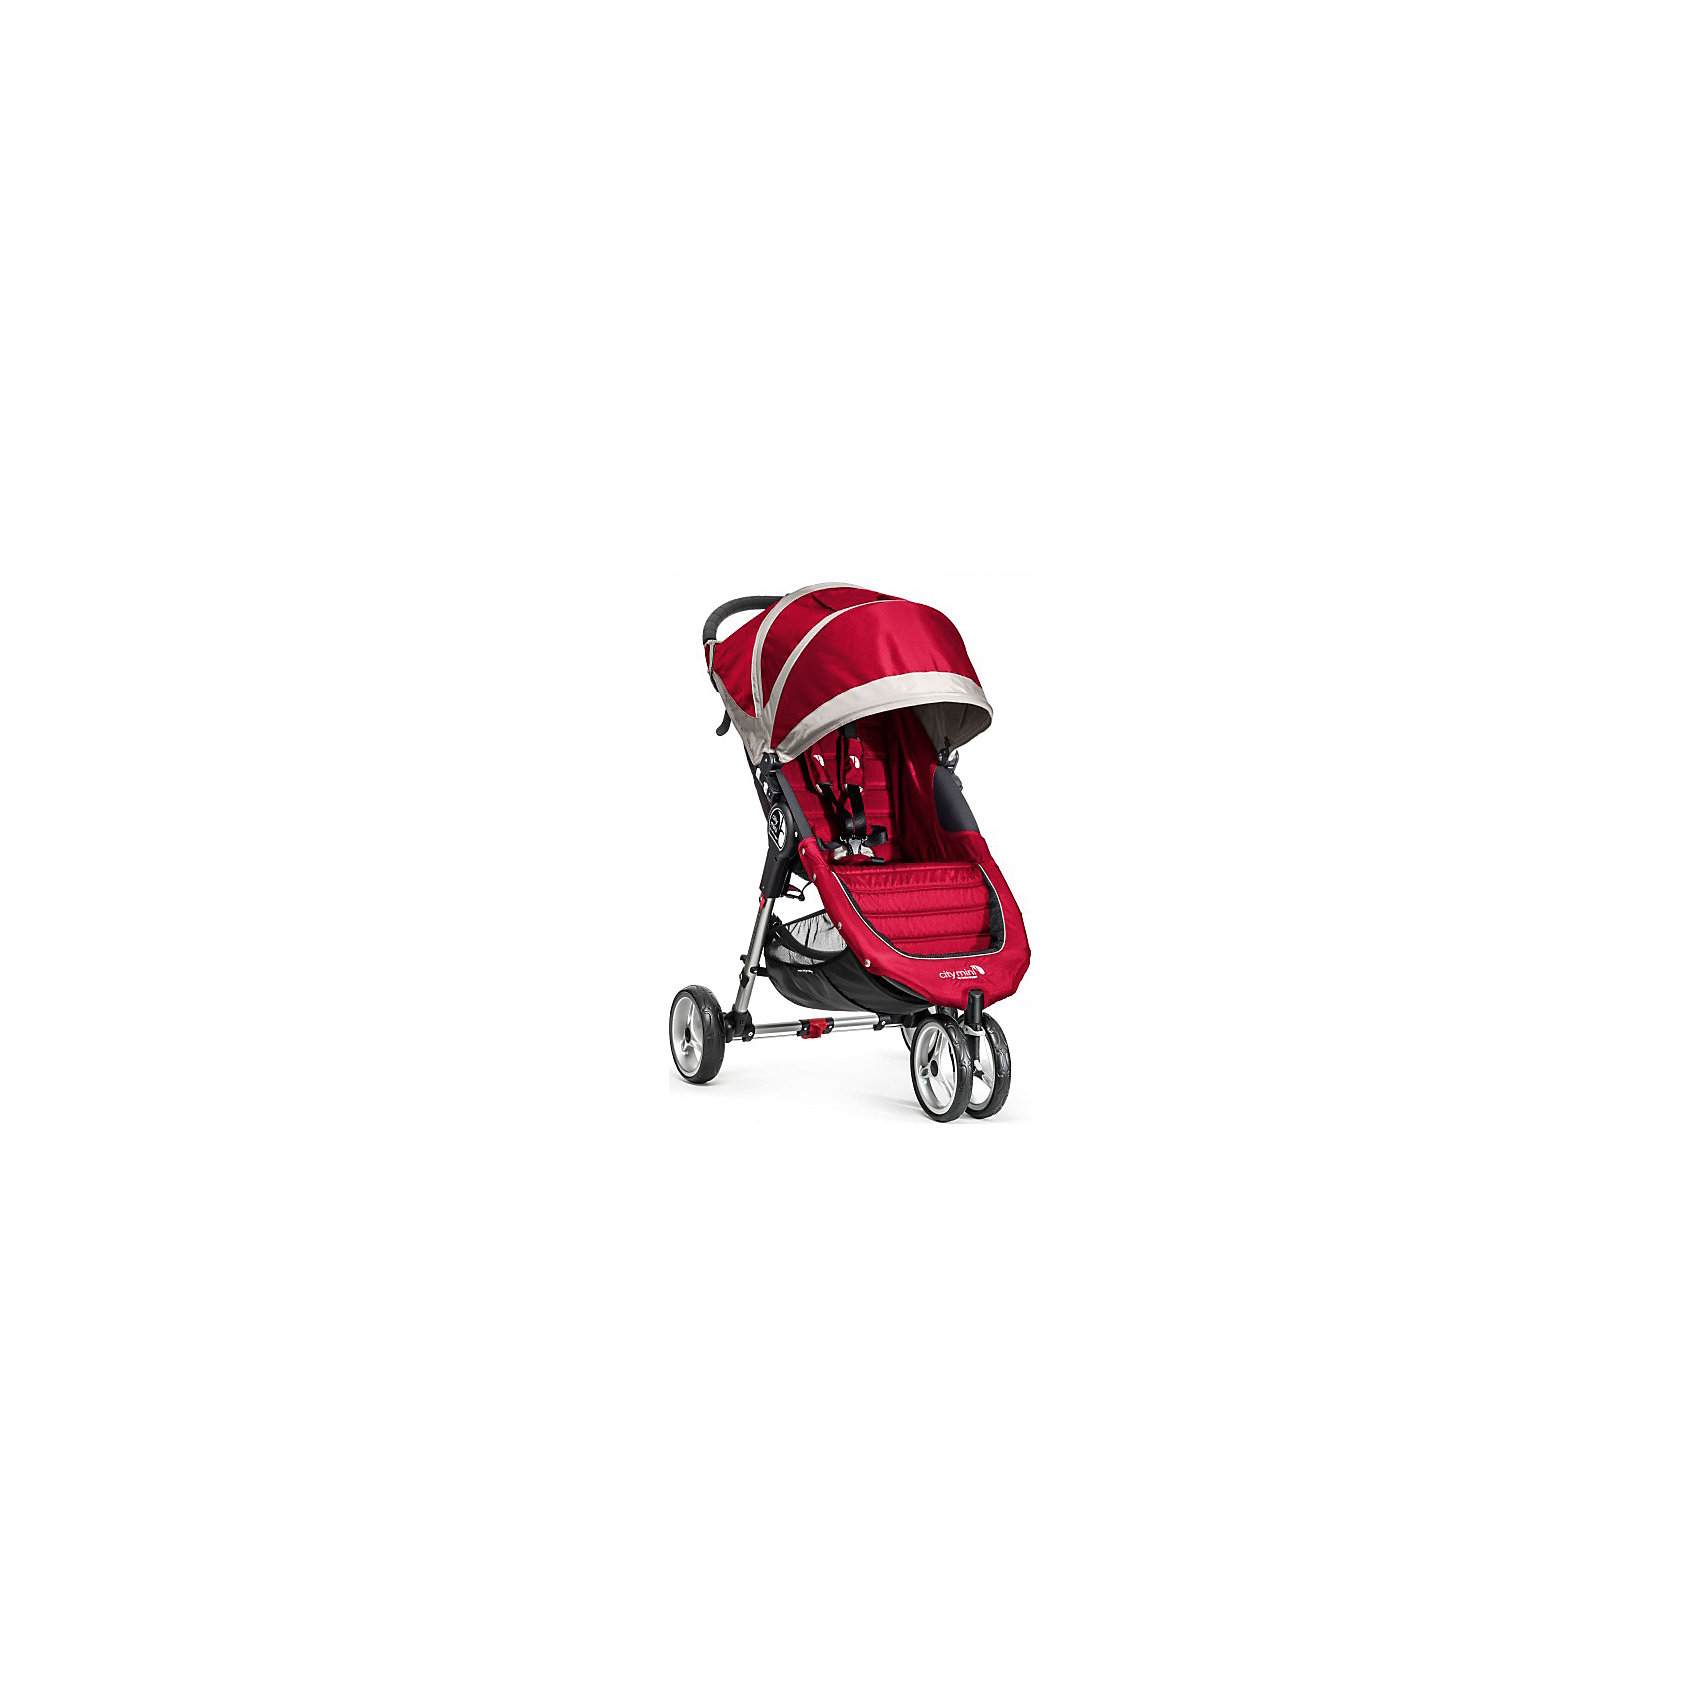 Baby Jogger Прогулочная коляска City Mini Single, Baby Jogger, красно-серый прогулочная коляска liko baby city style bt 109 grey